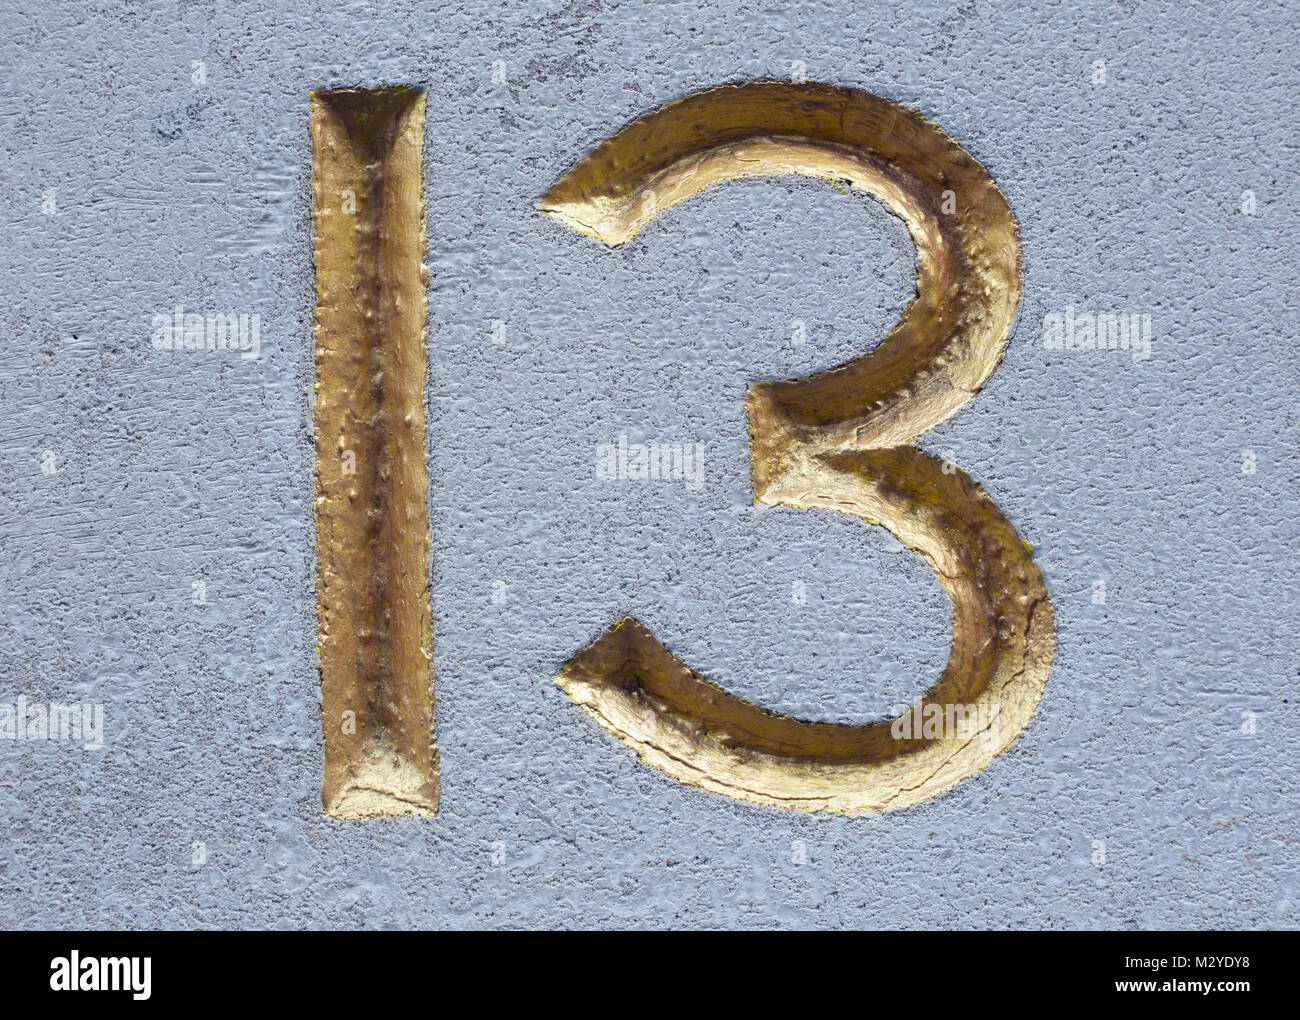 Number 13 in bevelled gold gilded numerals chased into light stone. - Stock Image